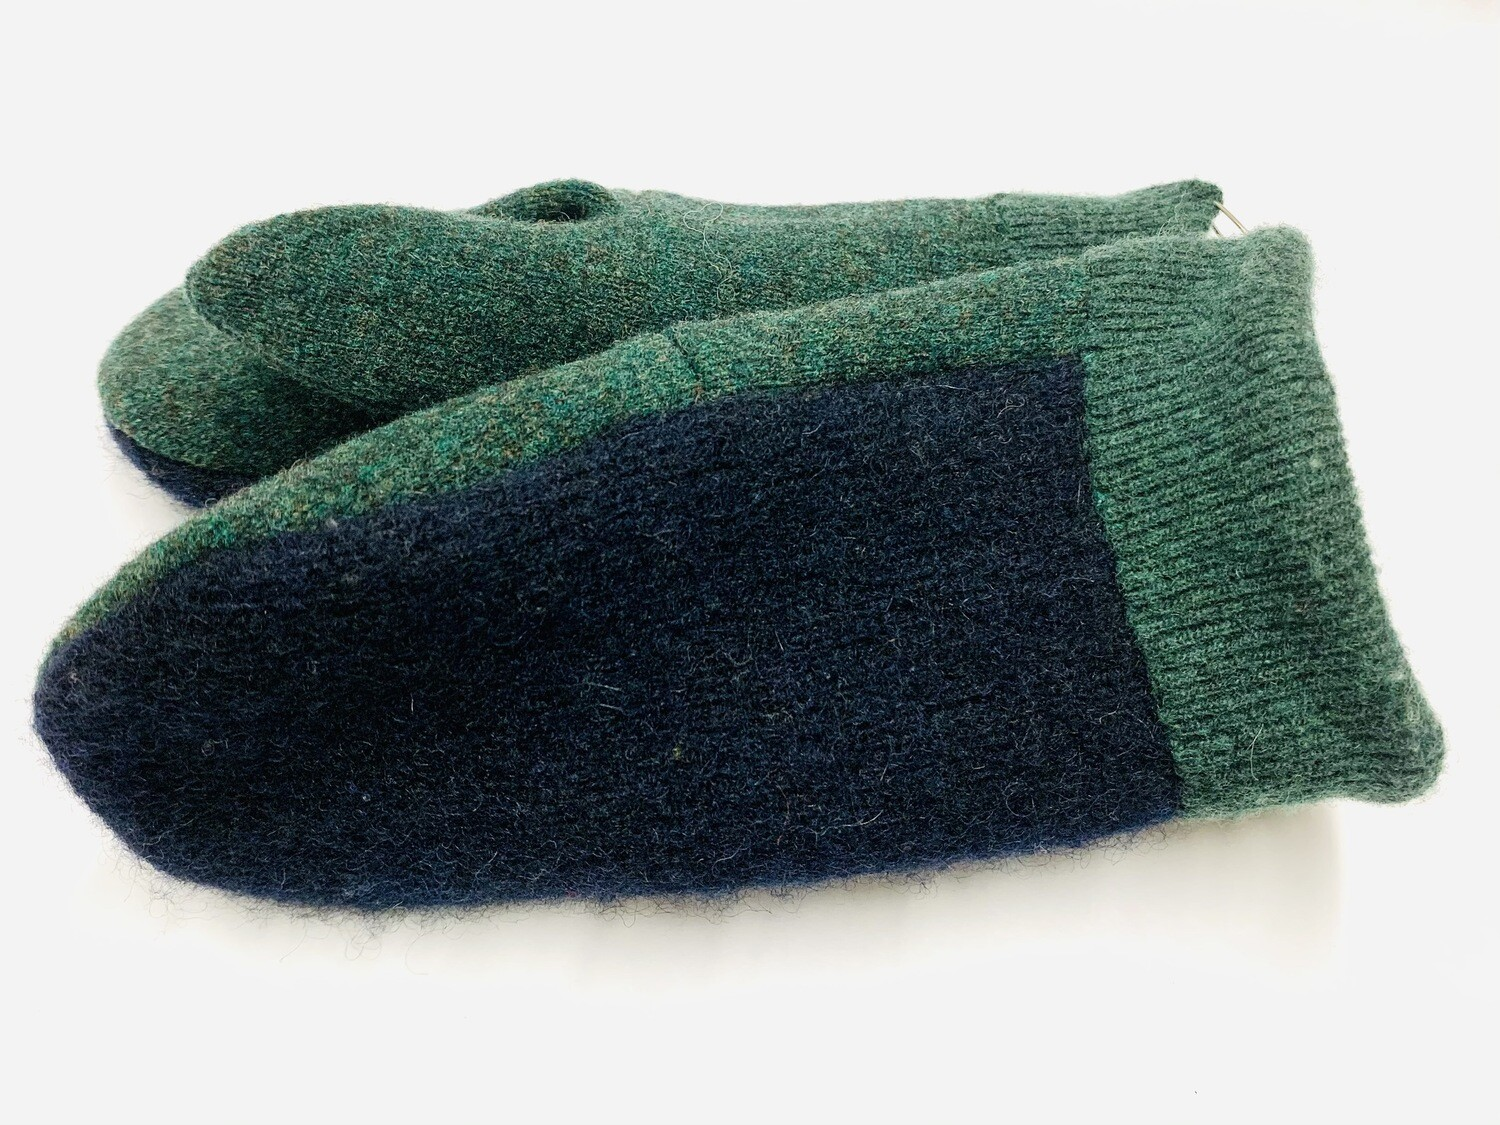 Blue & Green, Youth - Mary's Mittens